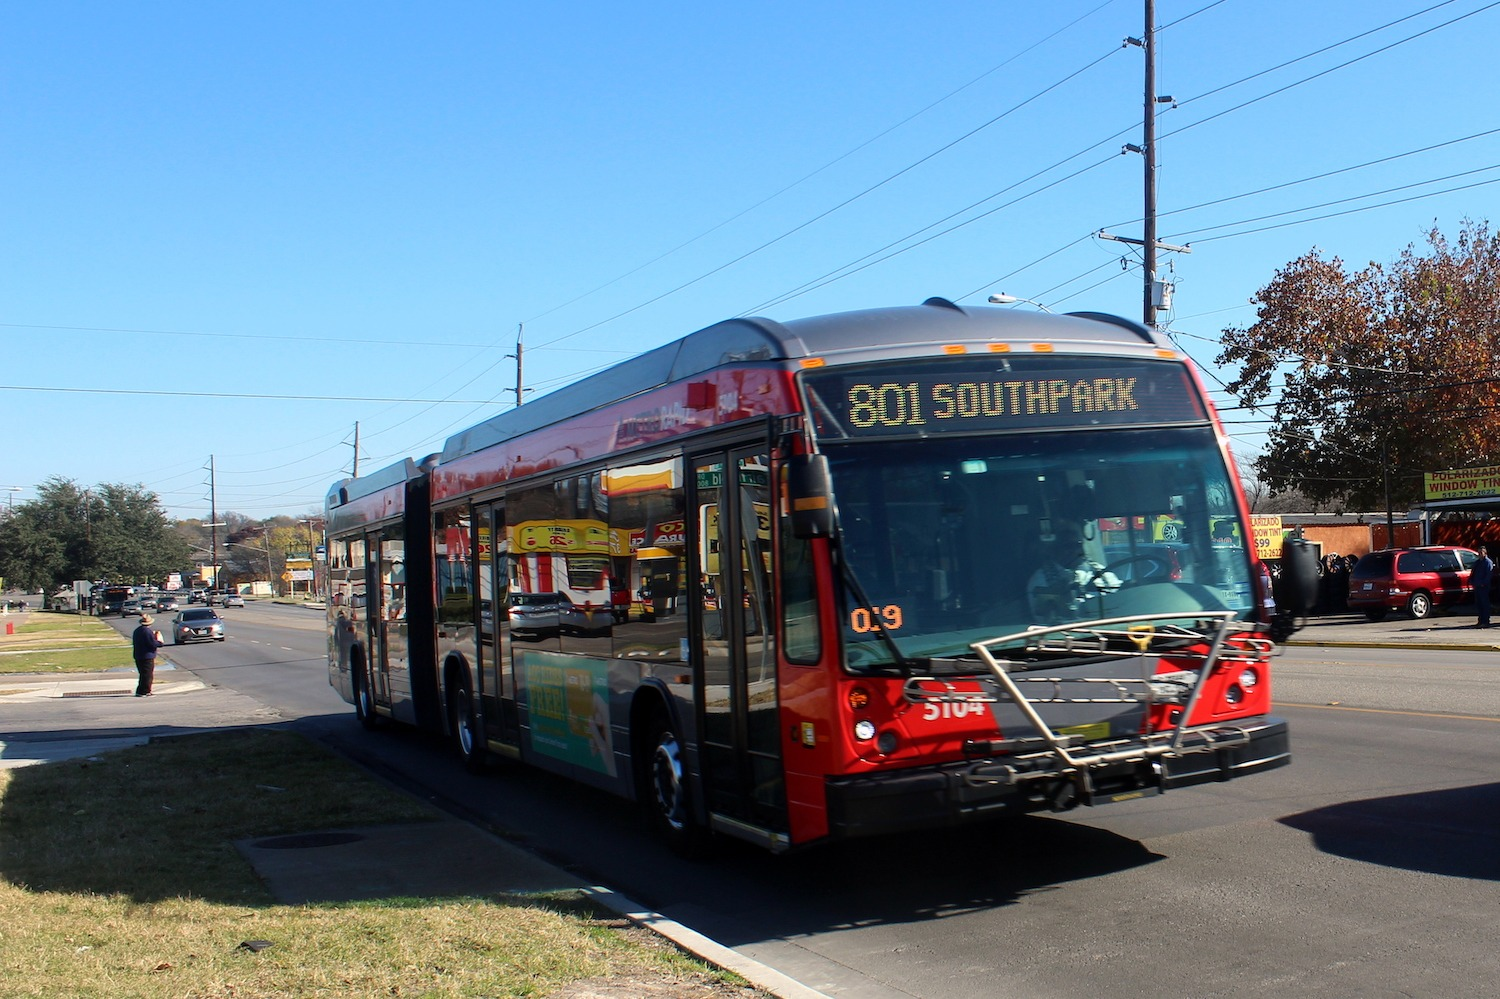 One year after bus system overhaul, Capital Metro sees consistent ridership gains